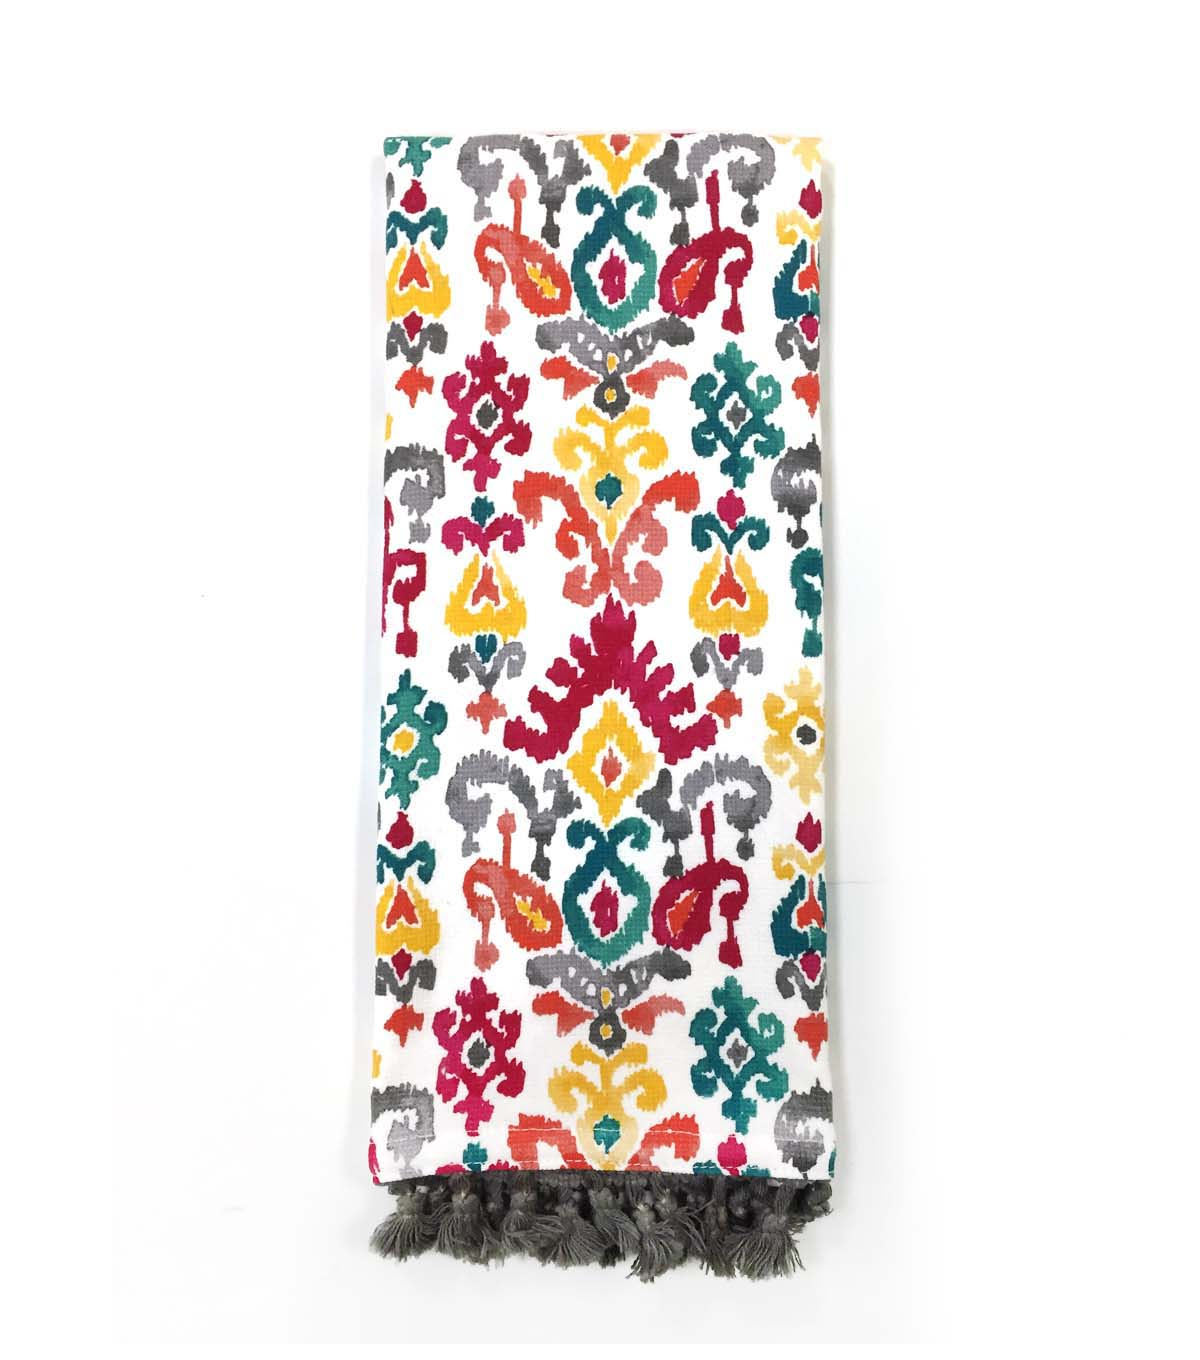 Hudson 43 Global Journey 16\u0027\u0027x28\u0027\u0027 French Terry Towel-Multicolor Ikat